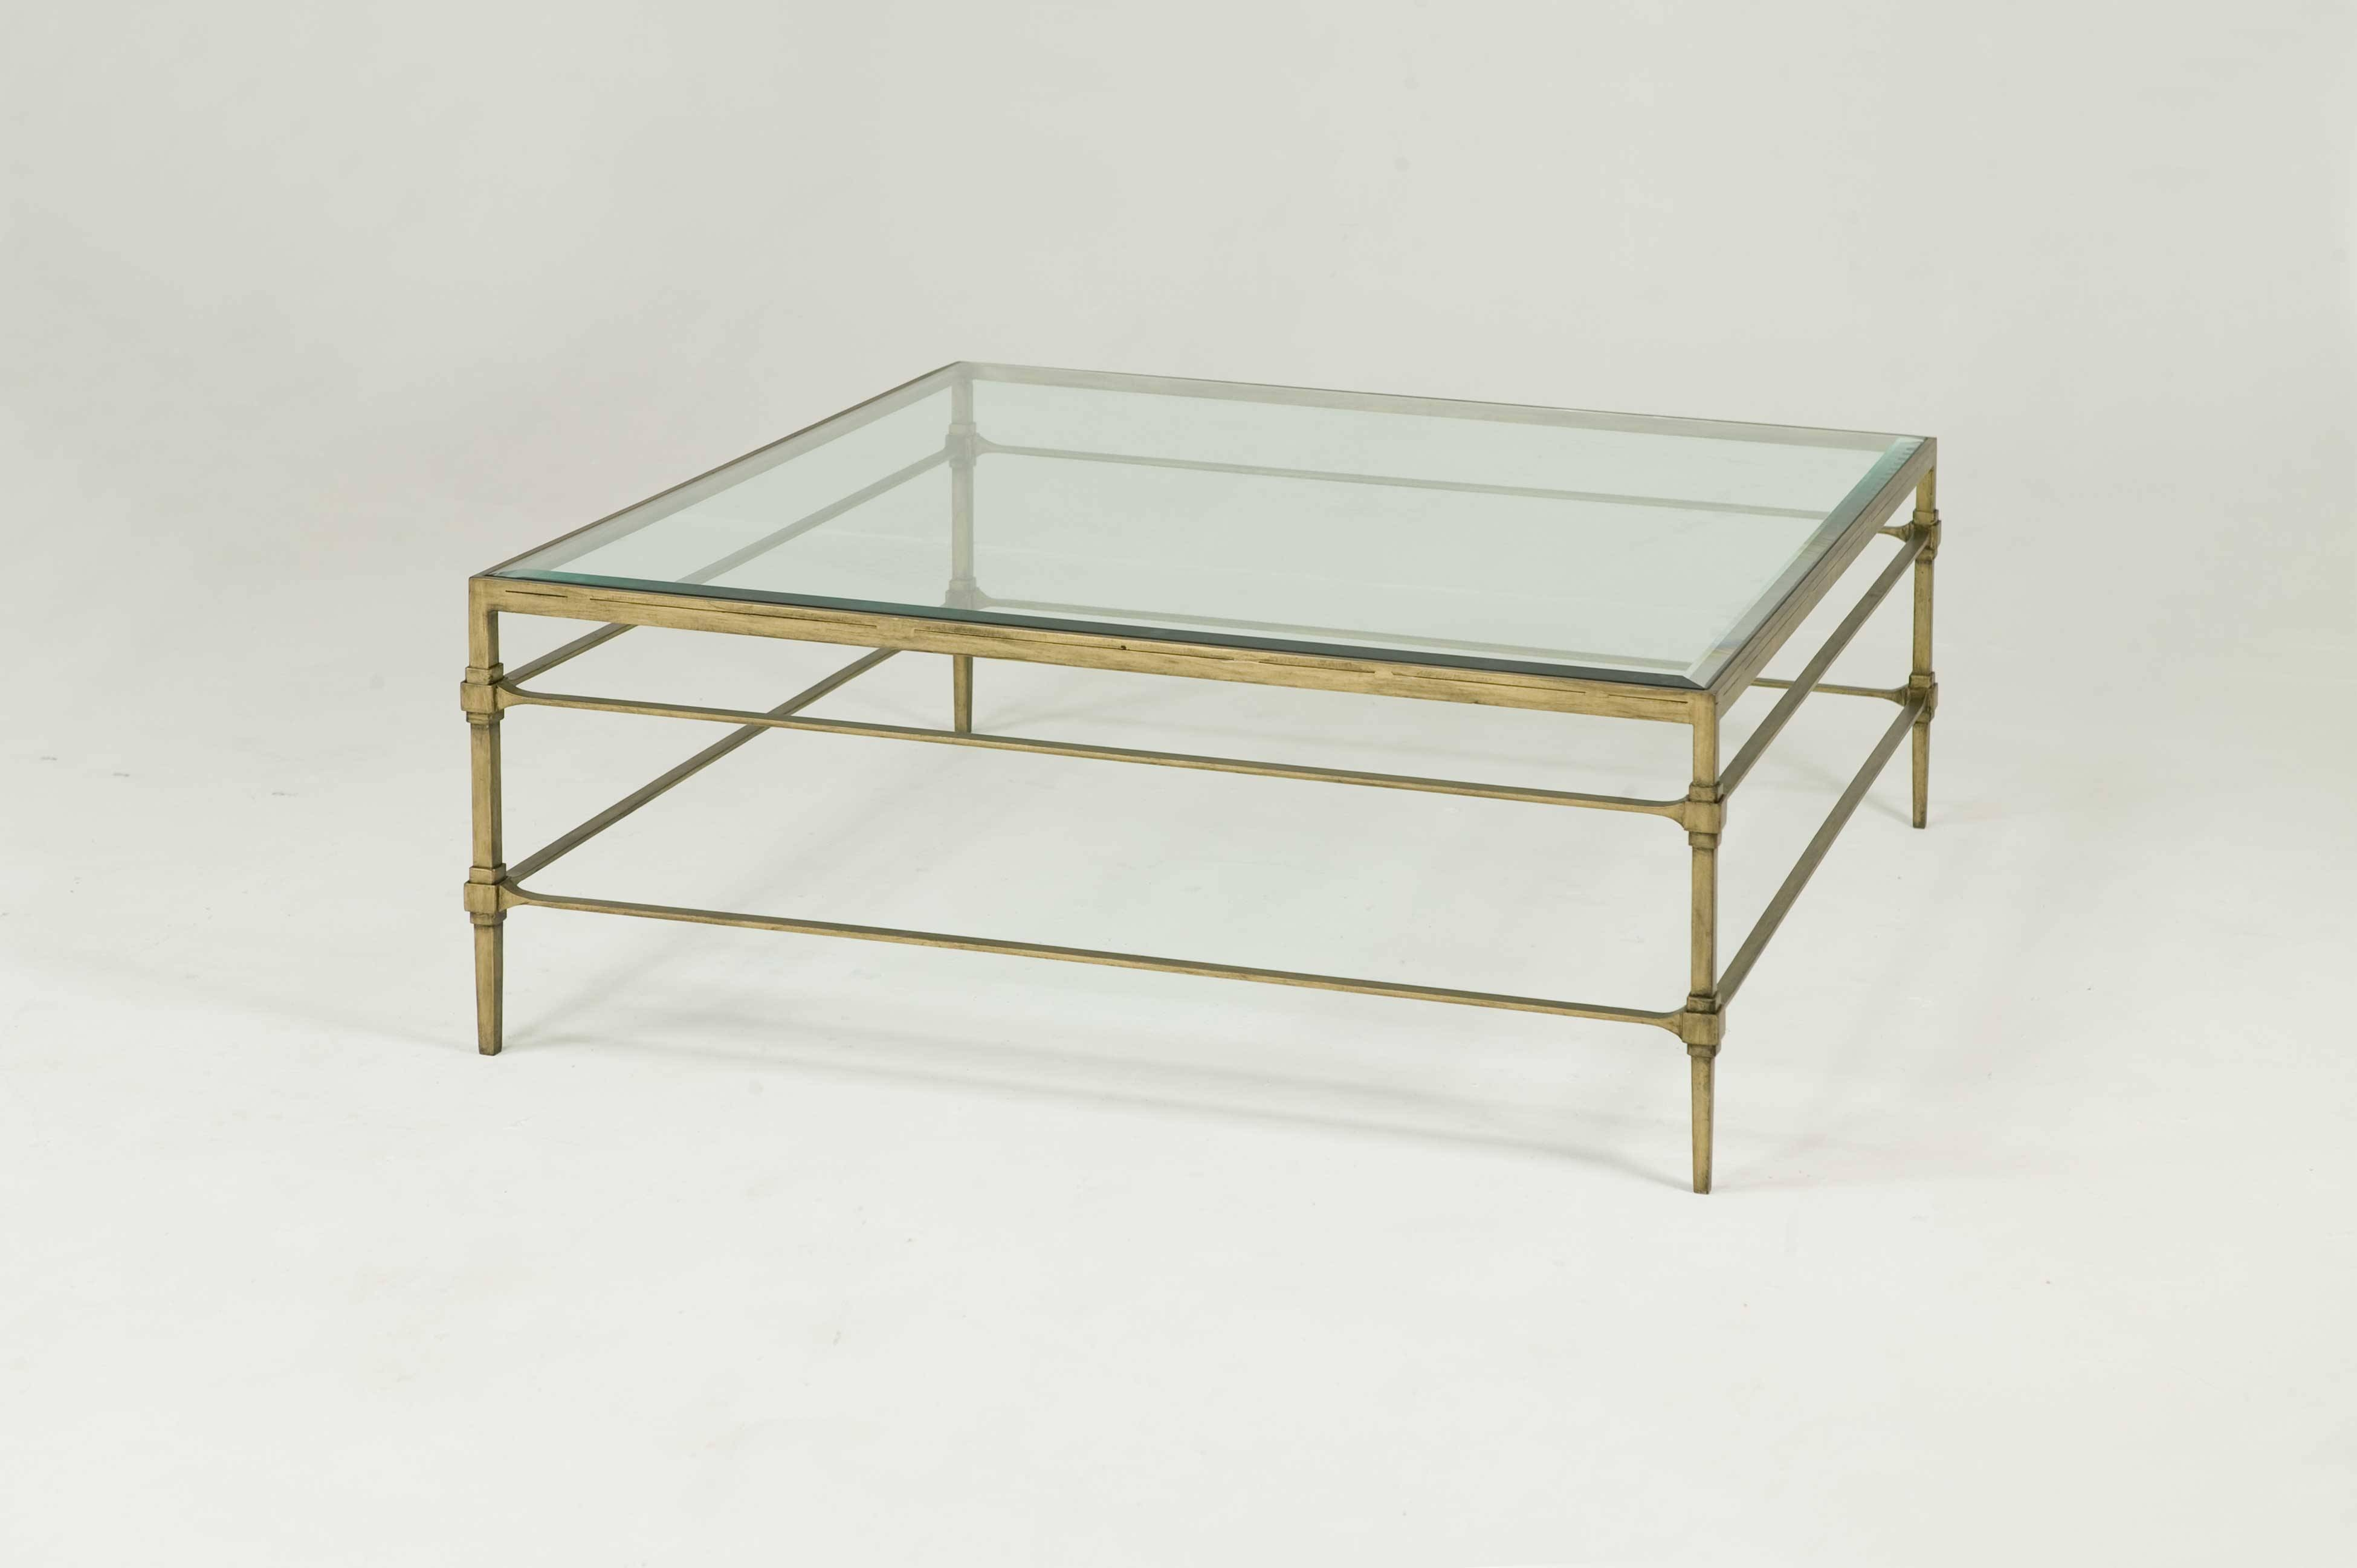 Square Glass Coffee Table For Living Room Decoration – Ruchi Designs Pertaining To Coffee Tables Glass And Metal (View 27 of 30)